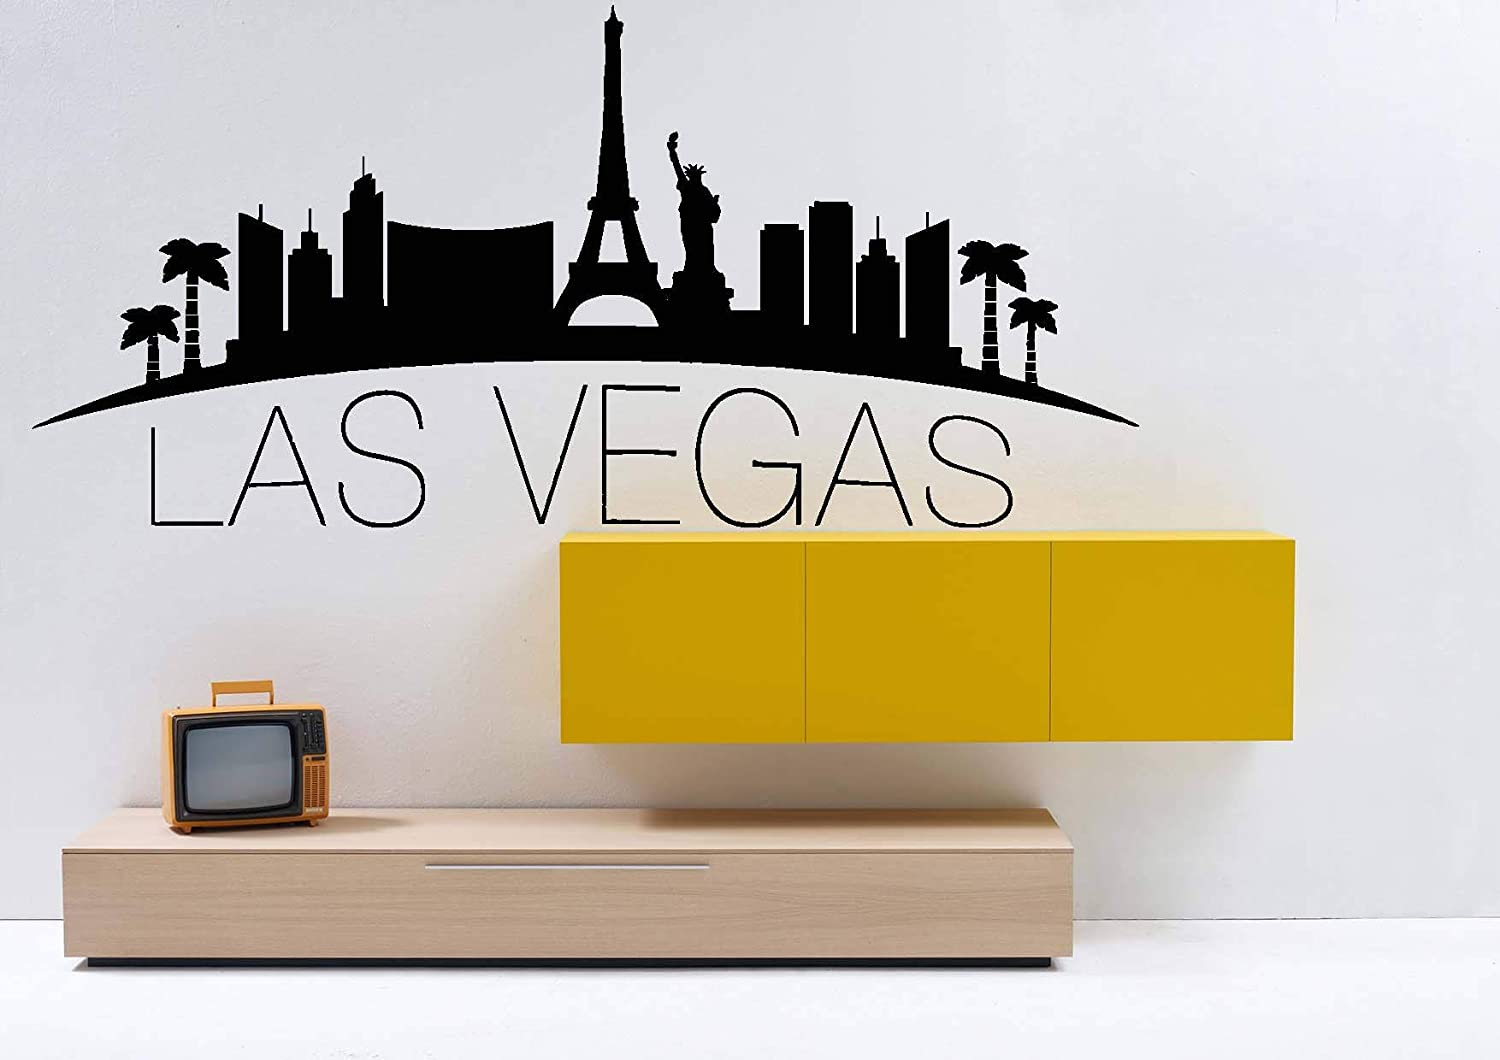 Amazon com wall decals decor las vegas city skyline decal usa vinyl sticker mural wall art wall decal home decor bedroom dorm decor custom room njs60 home